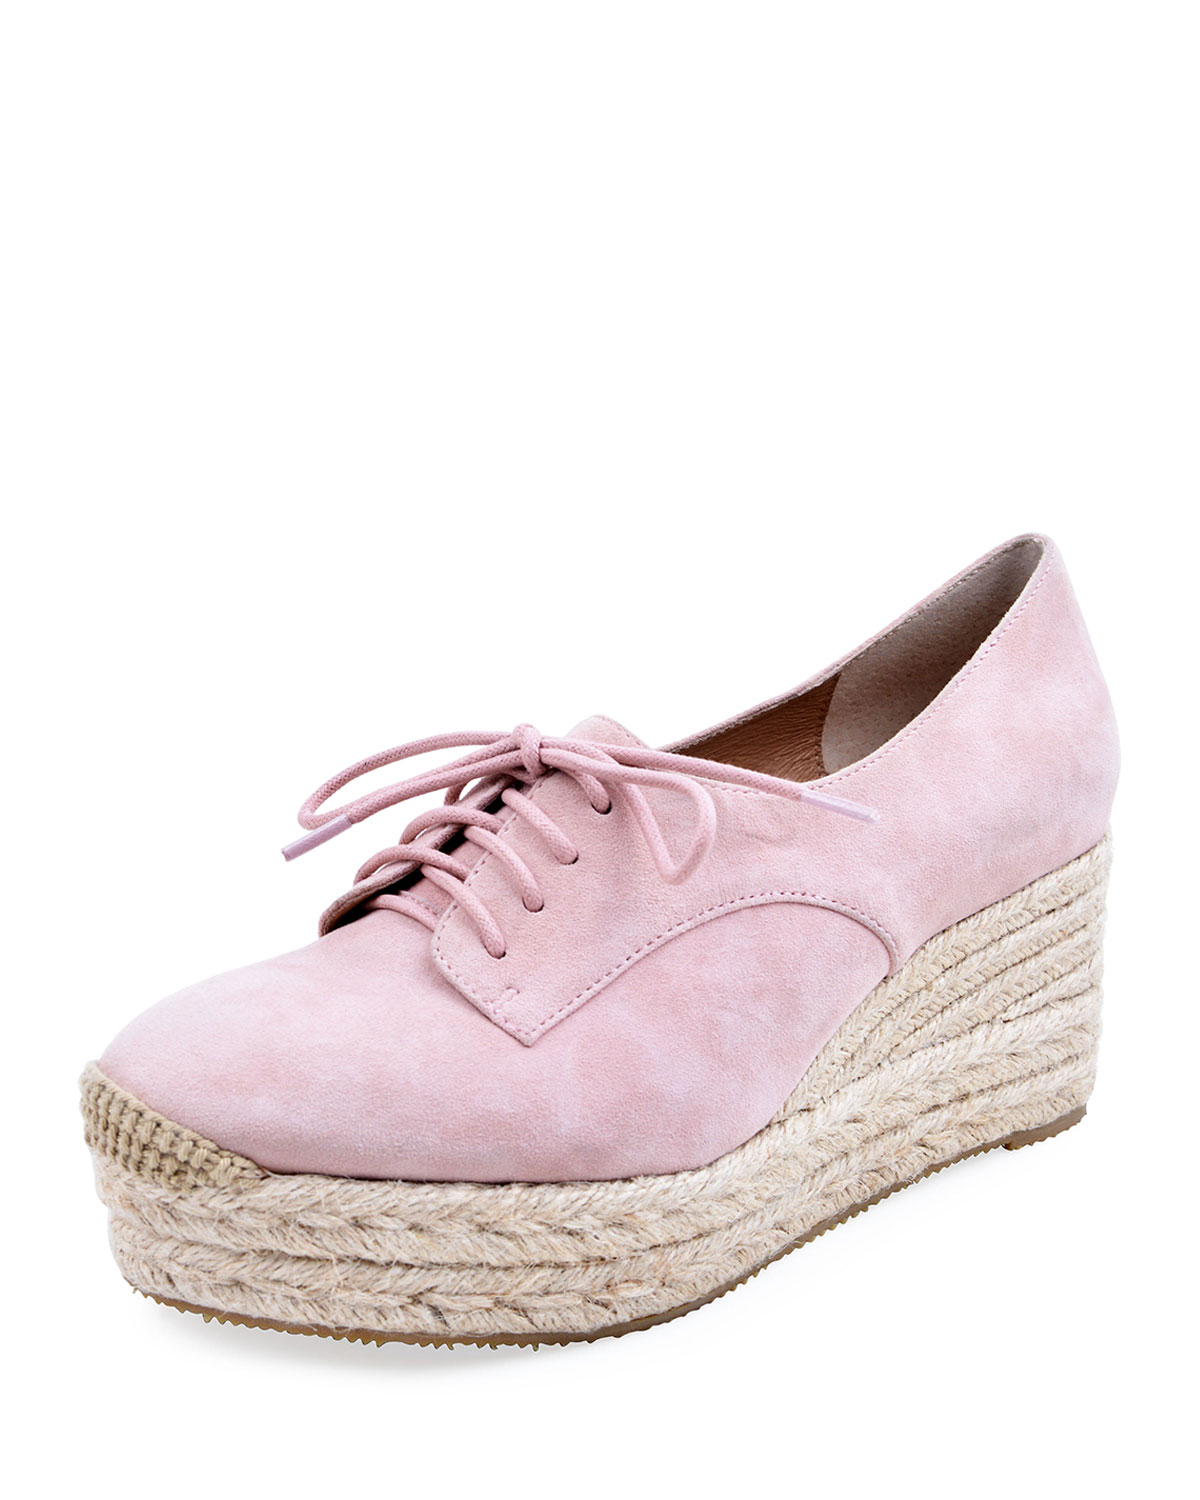 Regine Suede Lace-Up Espadrilles, Pink